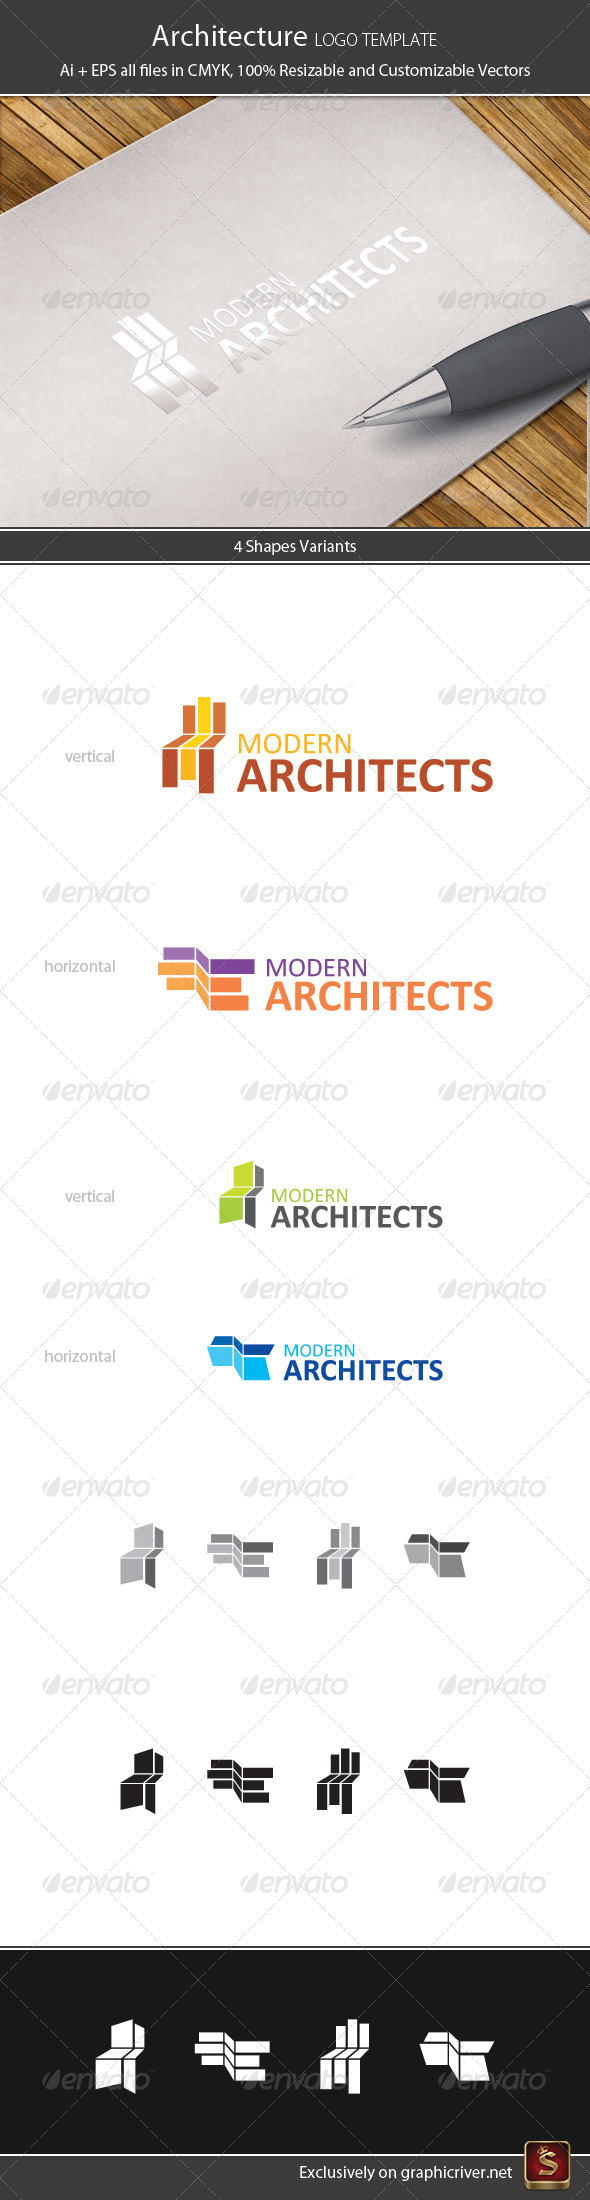 Architecture Logo Template - Vector Abstract